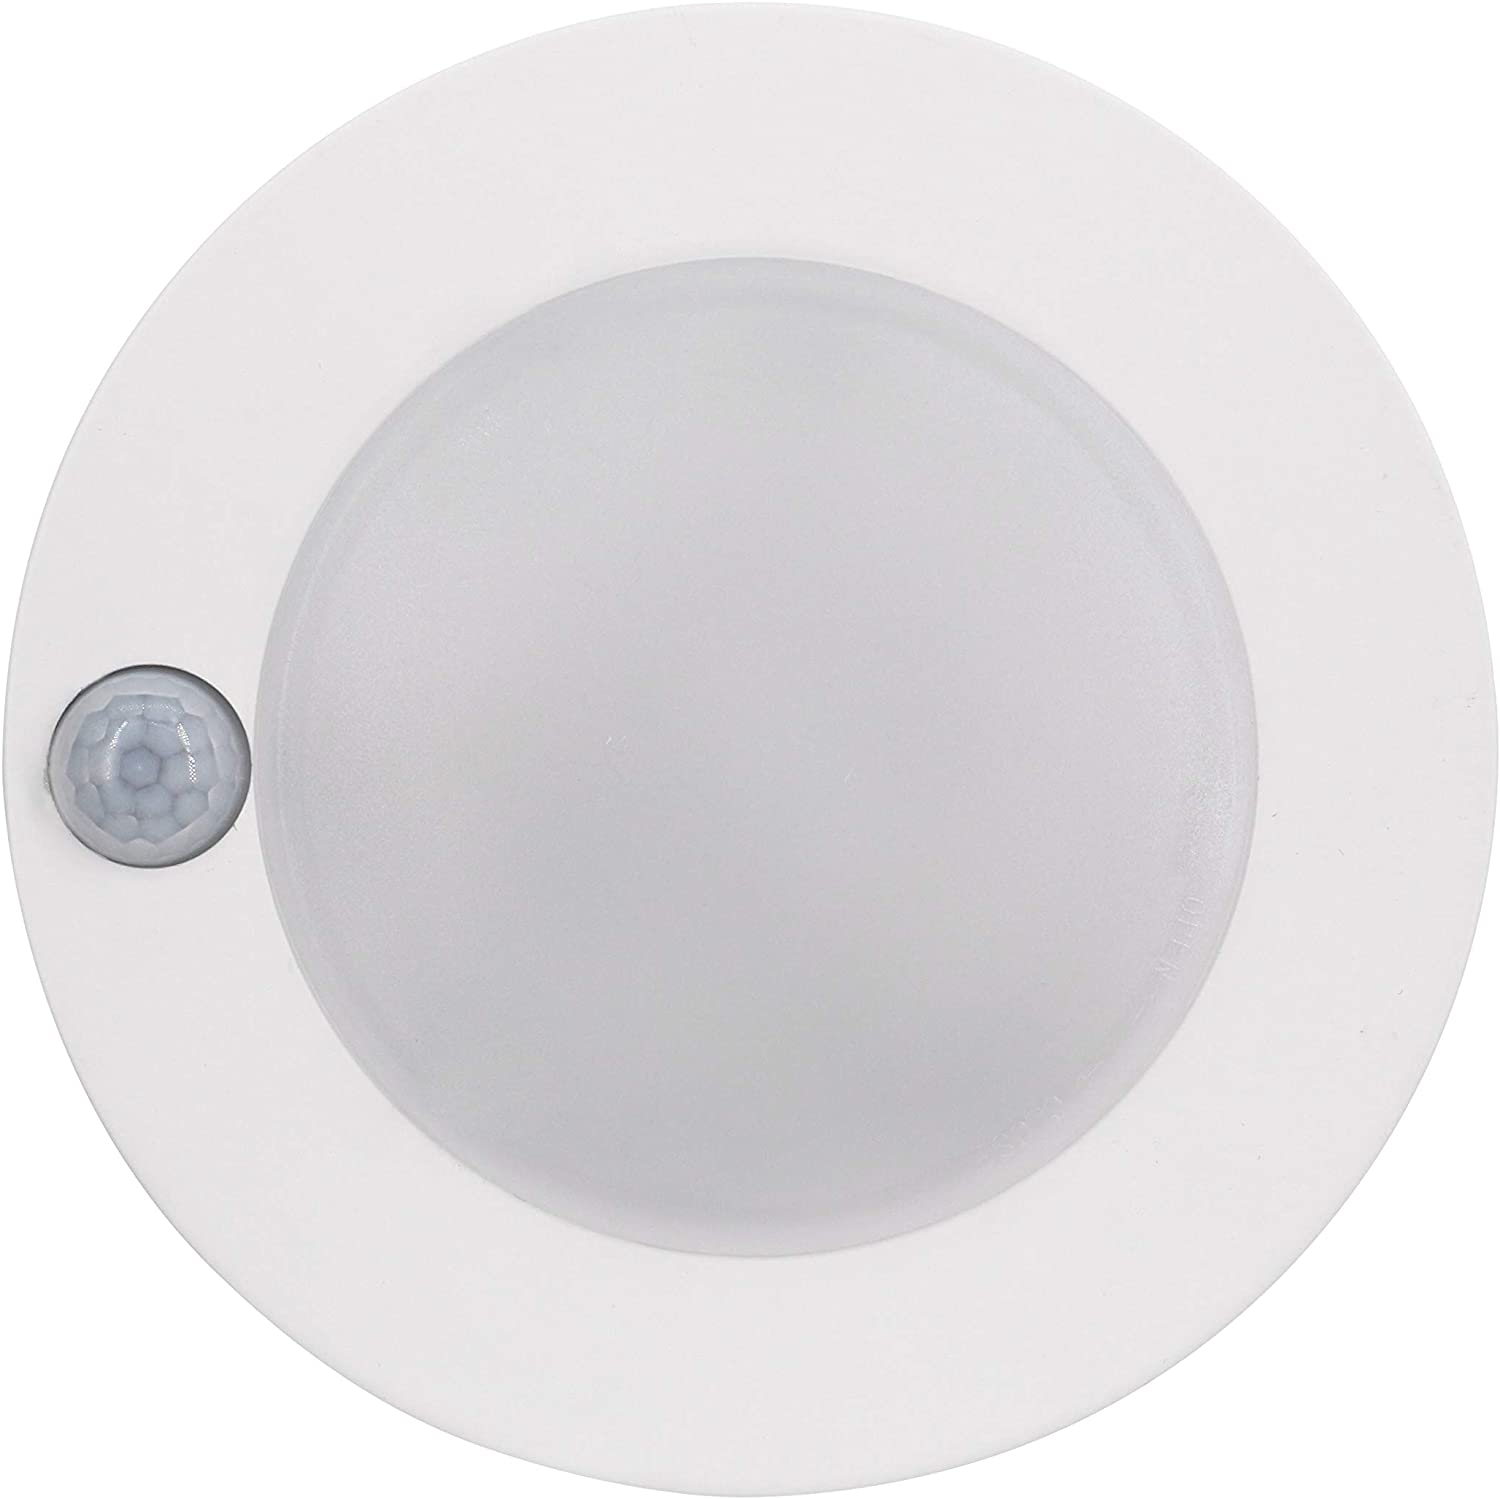 surface mount outdoor ceiling light with motion sensors